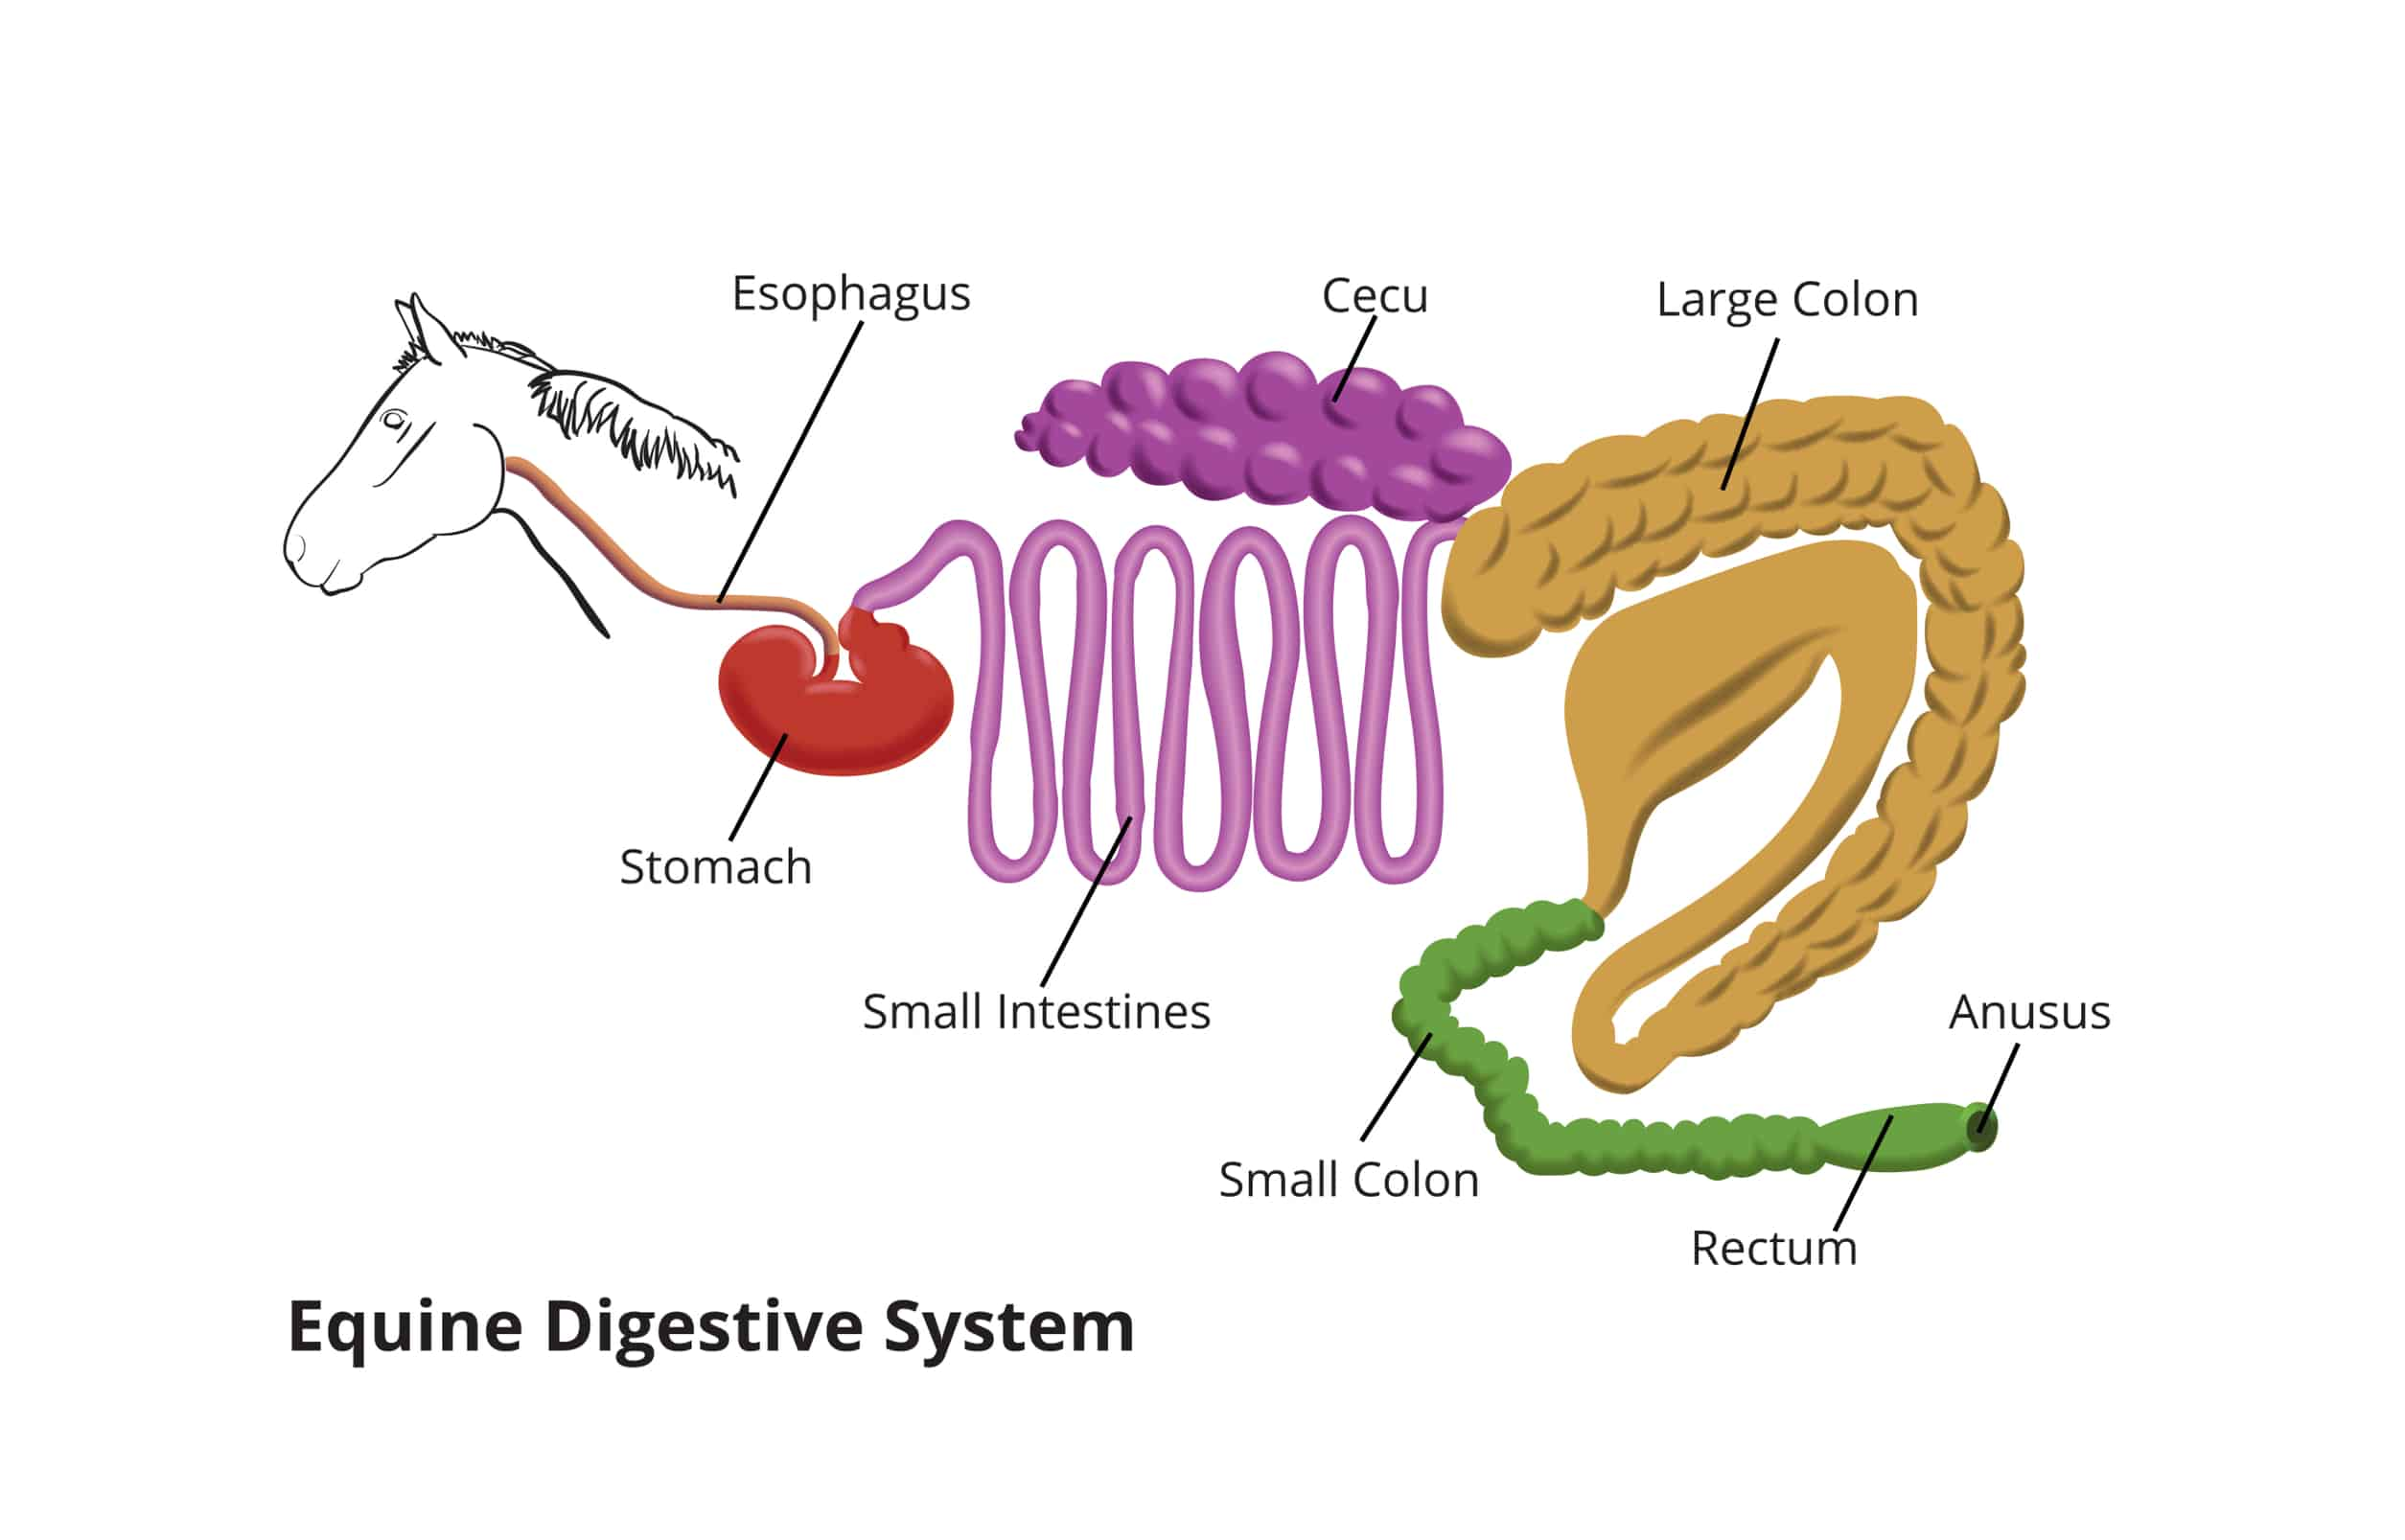 The equine digestive system